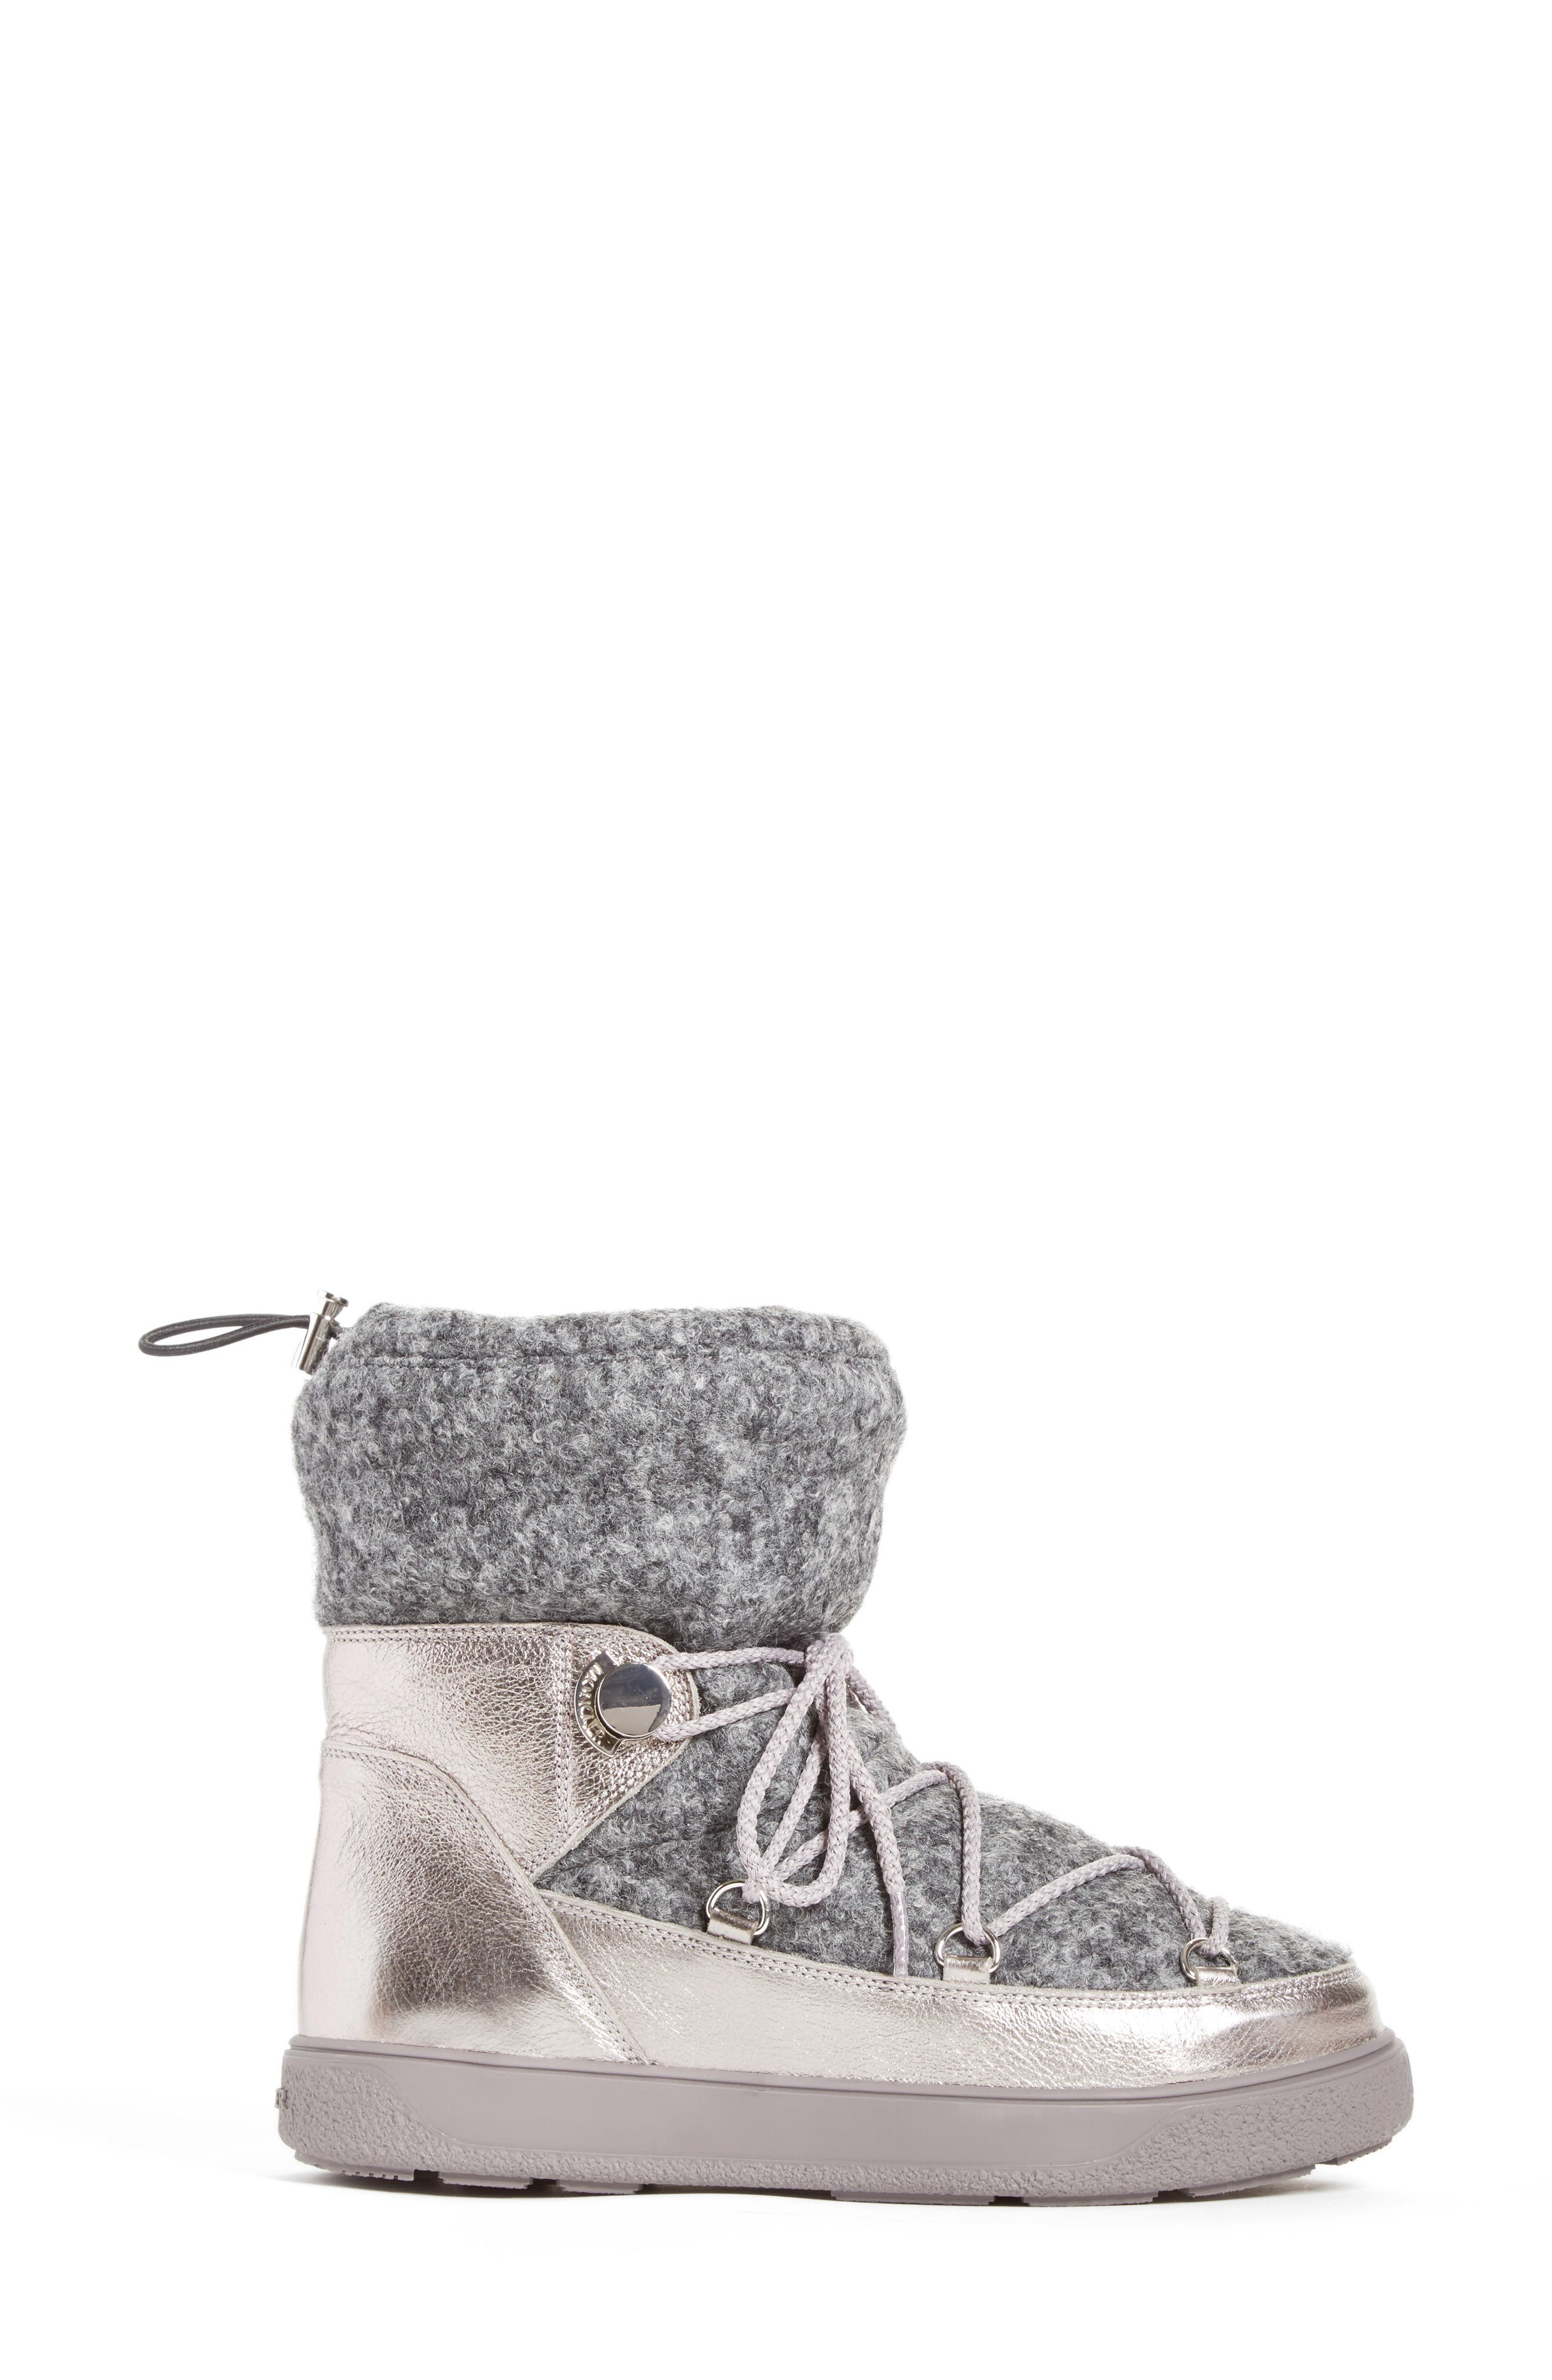 Ynnaf Boiled Wool Lined Snow Boot,                             Alternate thumbnail 3, color,                             Silver